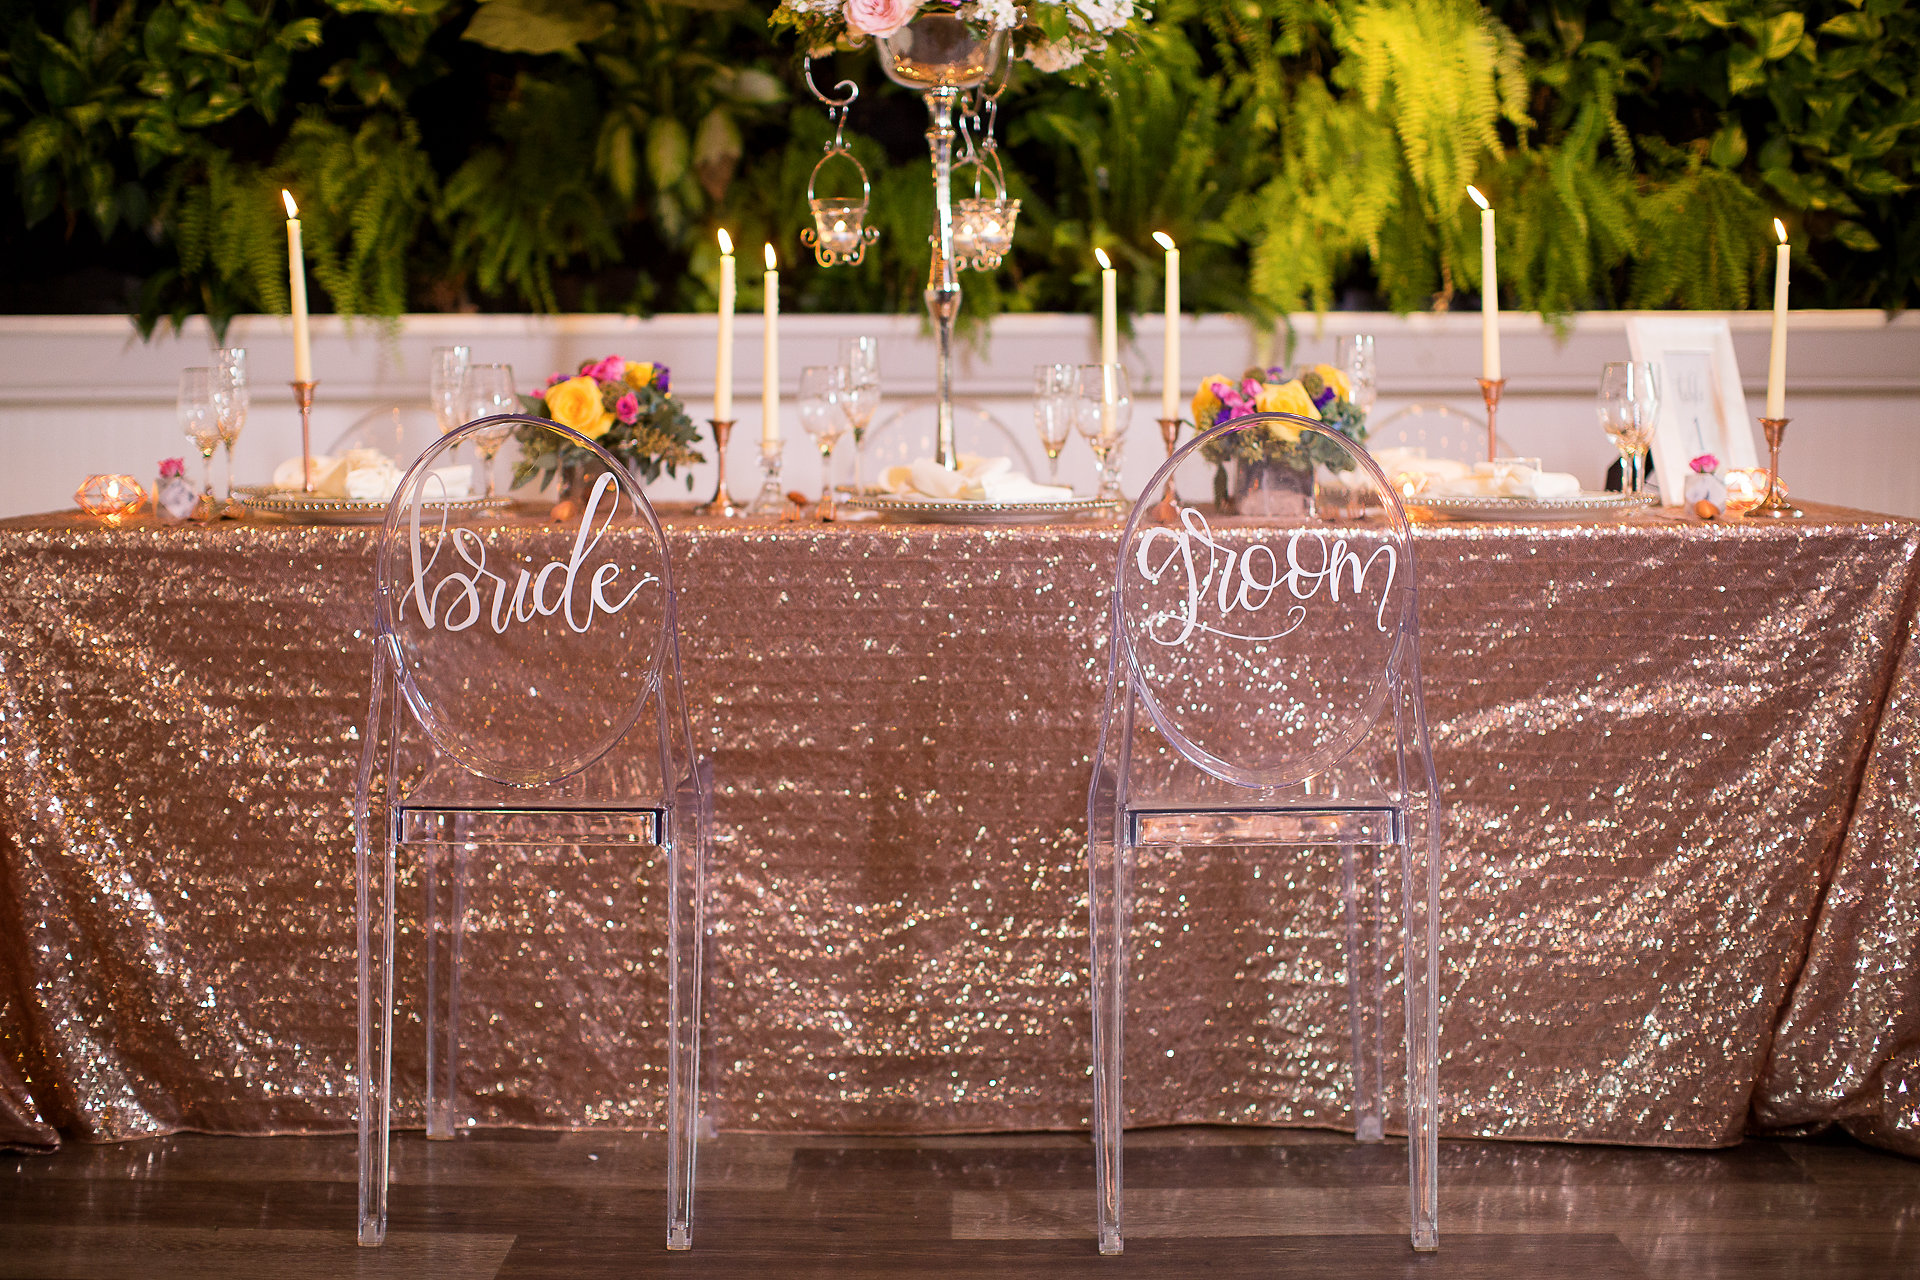 The incredible hand-lettered writing on the back of the chairs was done by Ink Letter Love!